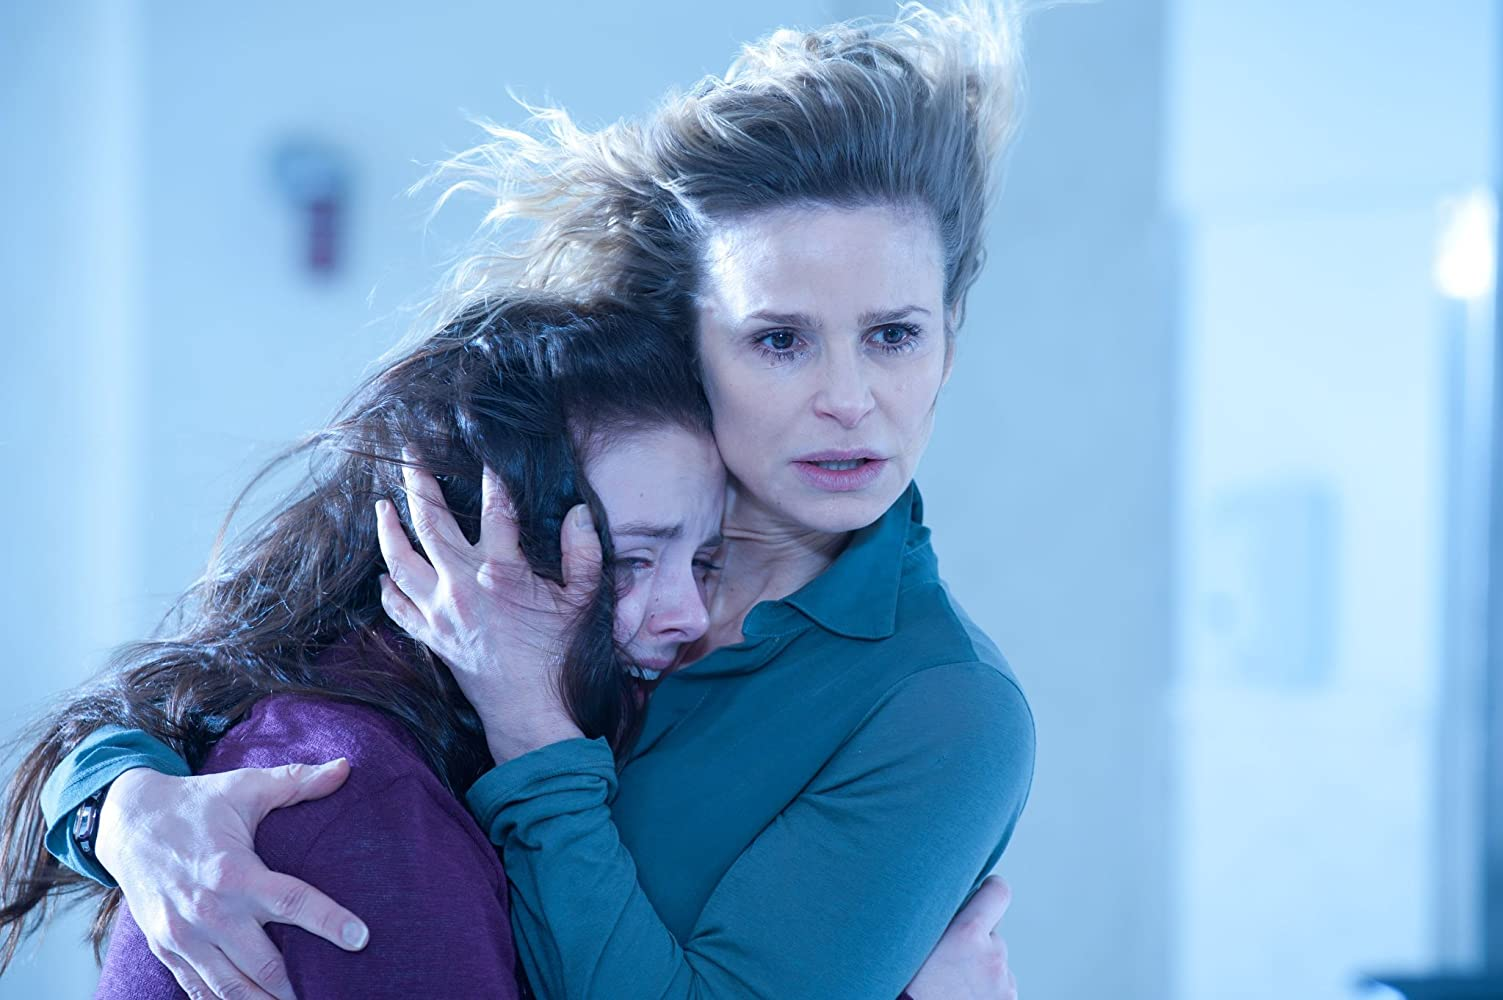 Kyra Sedgwick and Madison Davenport in The Possession (2012)